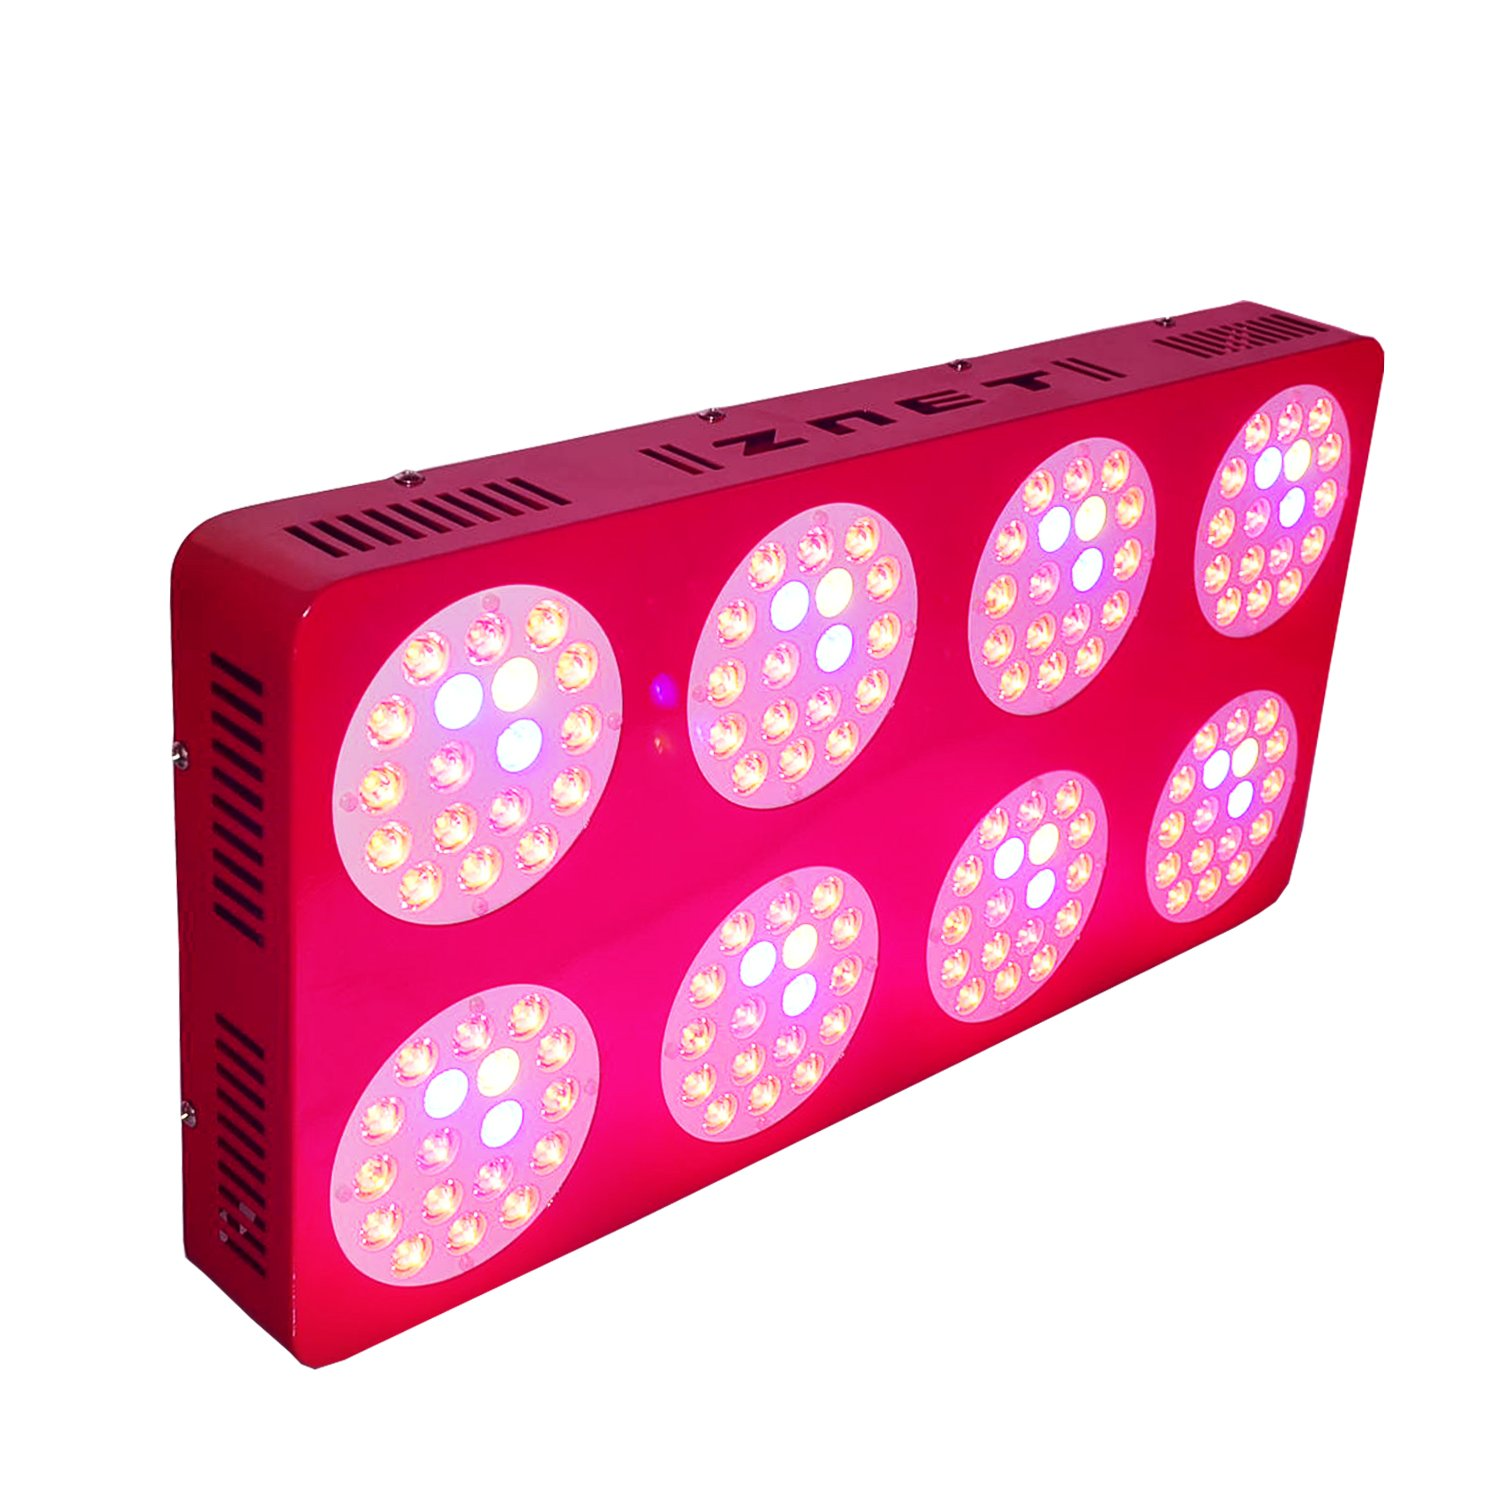 LED Grow Light GREENSUN 600W Indoor LED Plant Grow Lights Full Spectrum with UV&IR for Indoor Greenhouse Garden Vegetable Flower and Other Plants